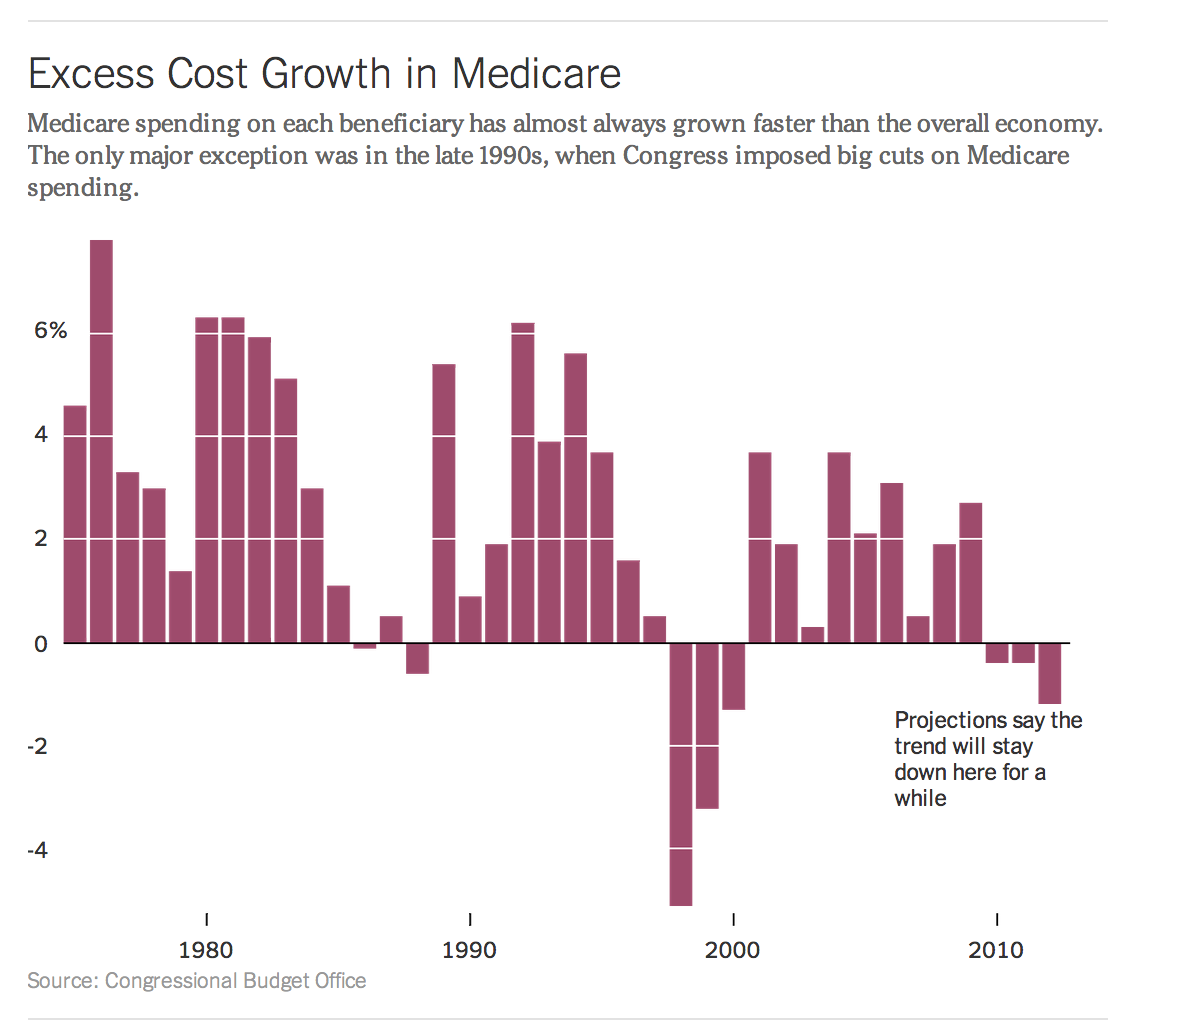 medicare excess cost growth